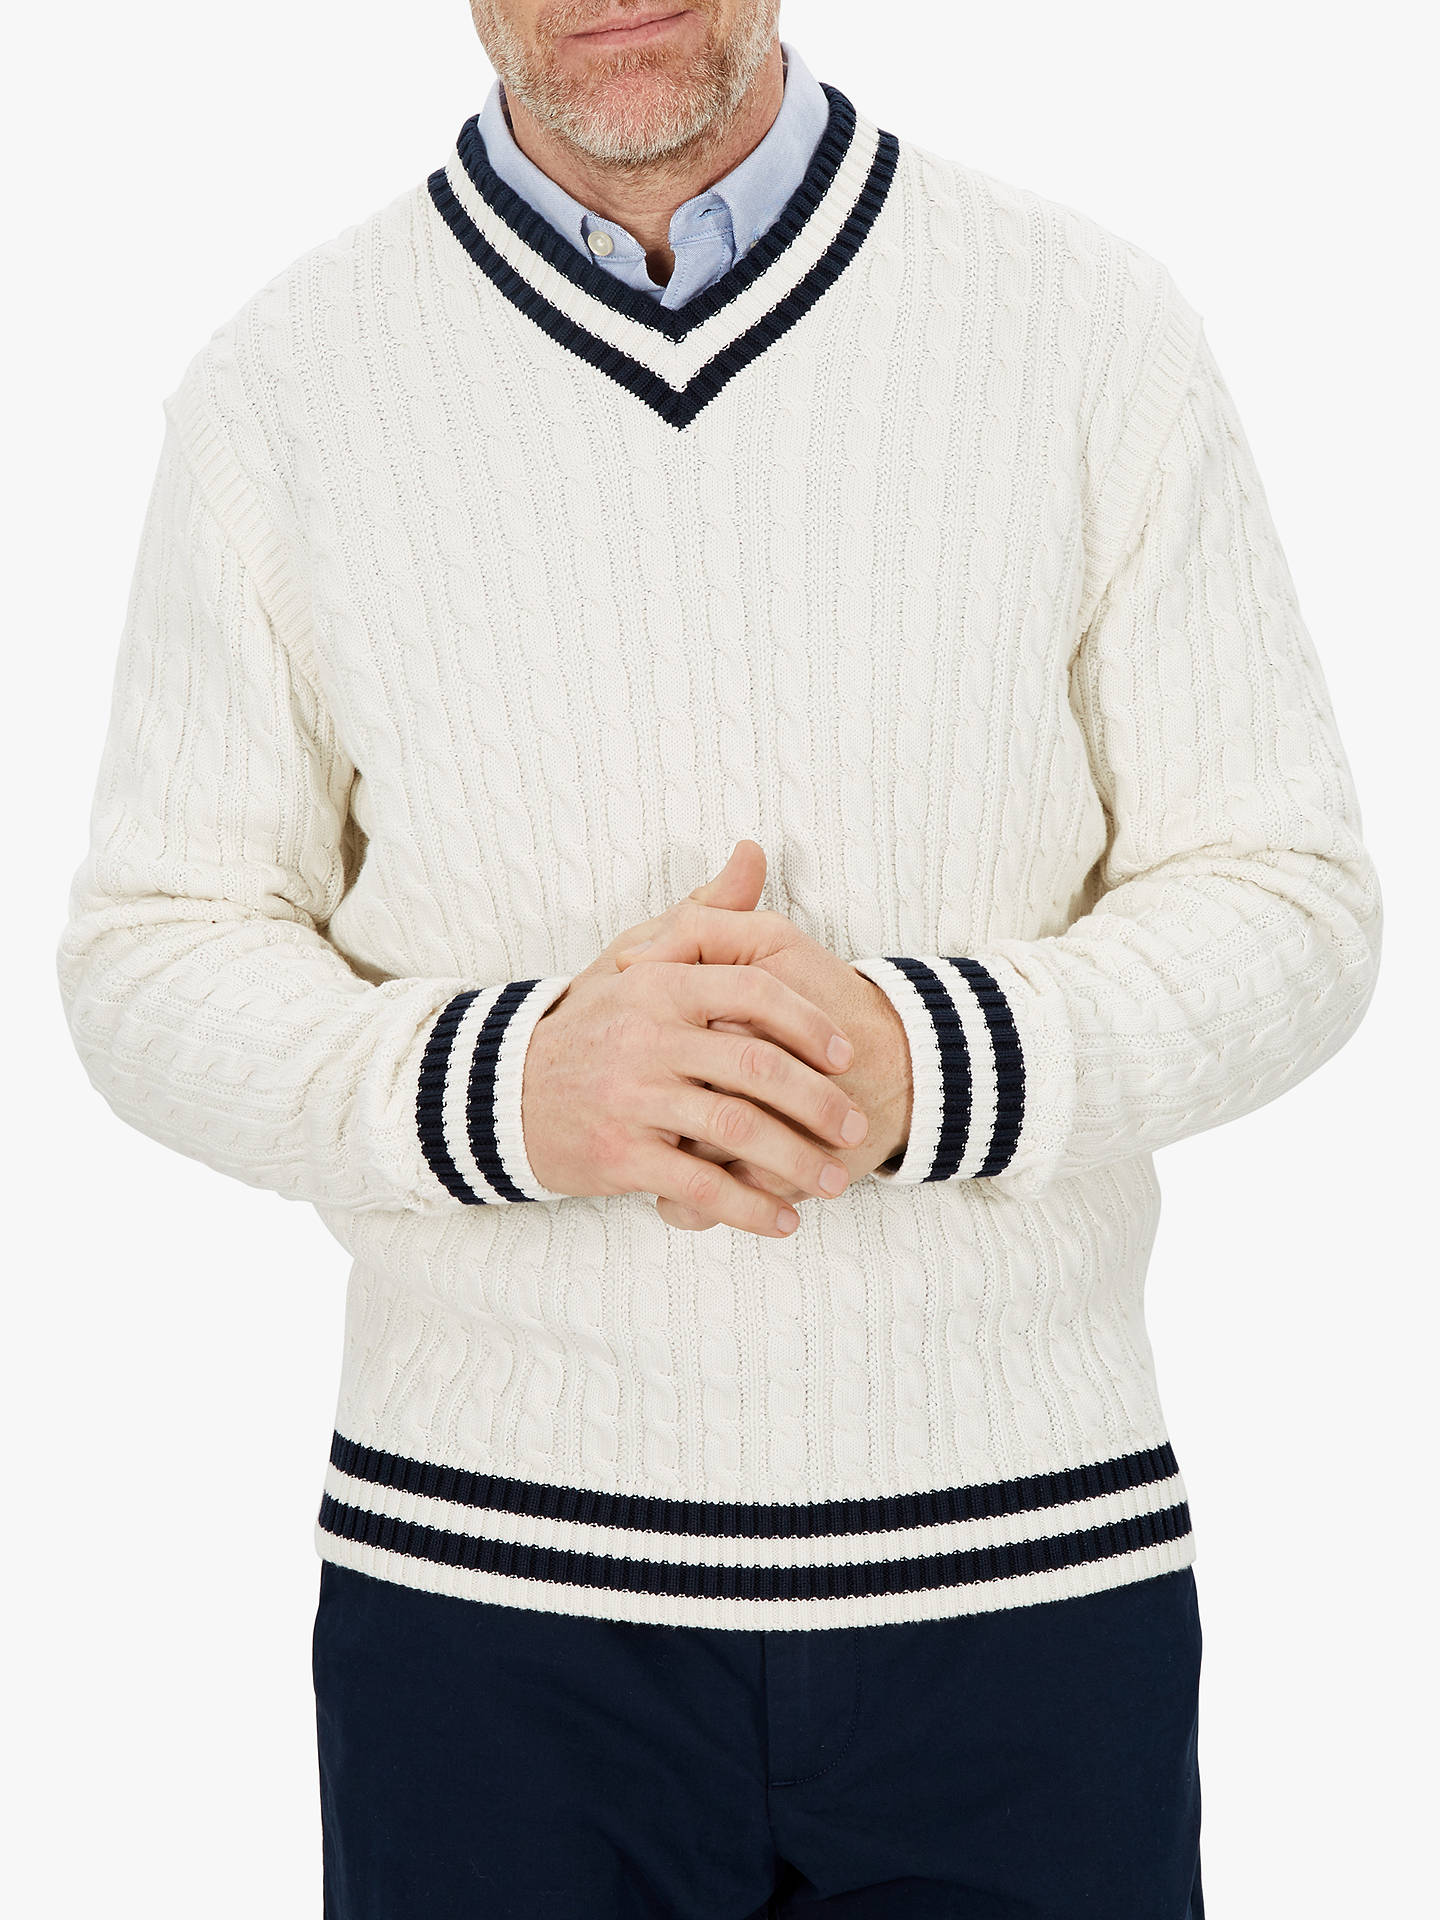 Jaeger V Neck Cricket Knit Jumper White At John Lewis Partners